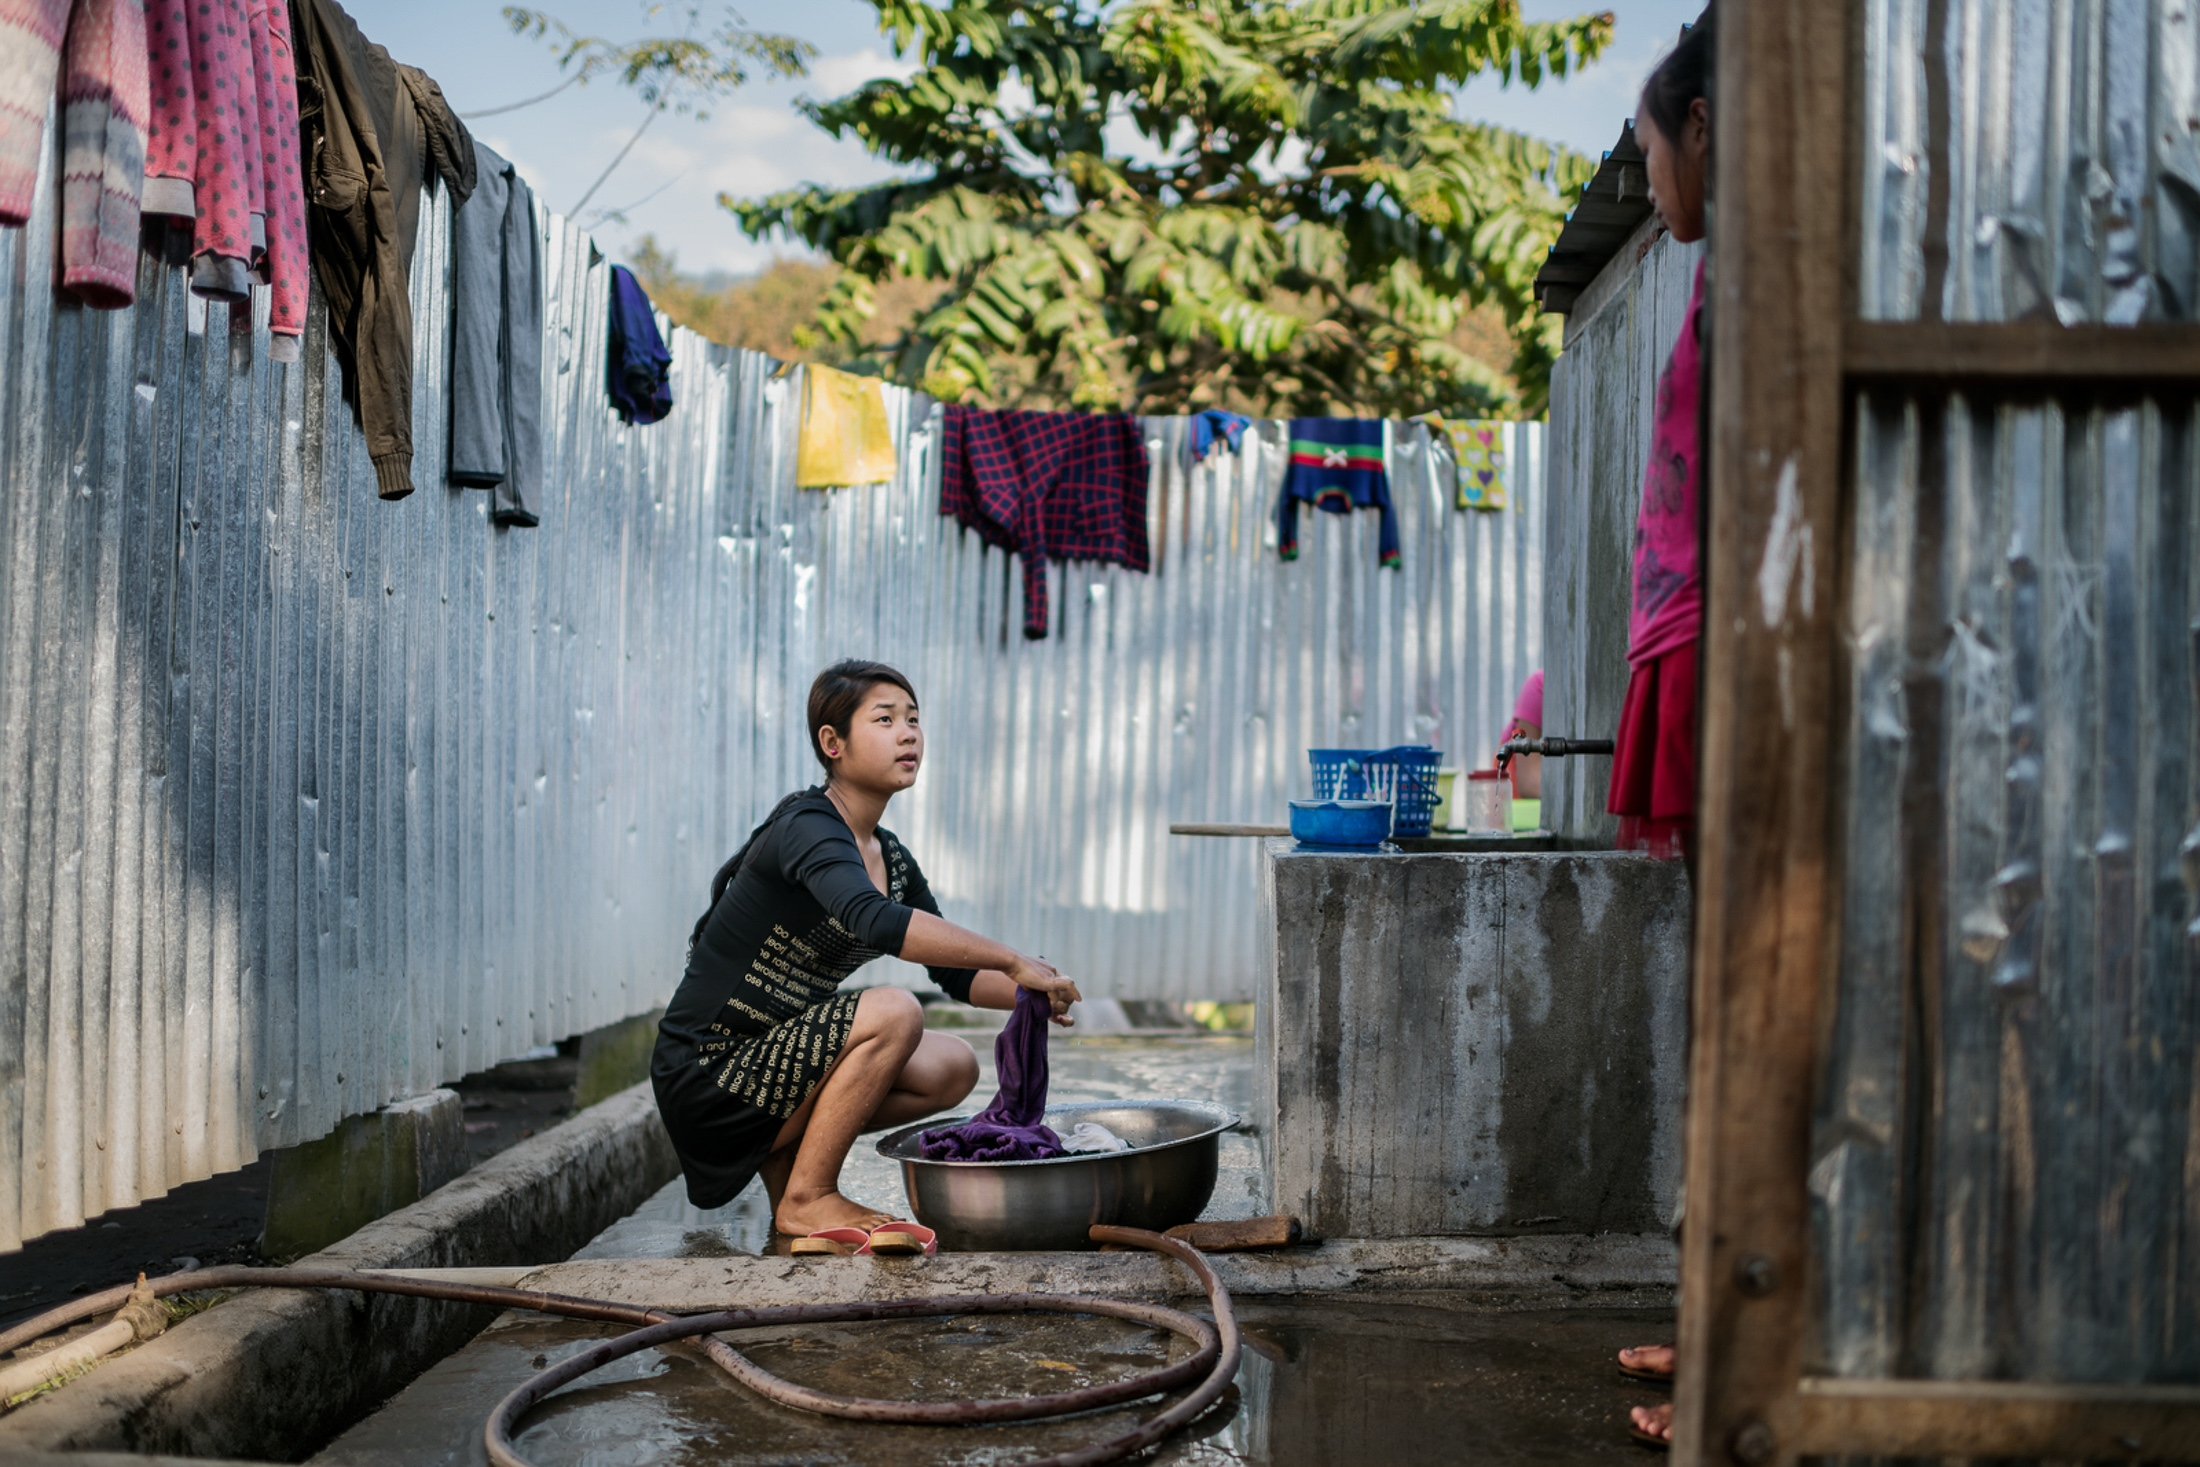 Seng Mai, 16, dropped out of school last year, and is now helping her mother more around the house in Je Yang IDP camp. She says she got tired of school, but that she will go back to school next year.